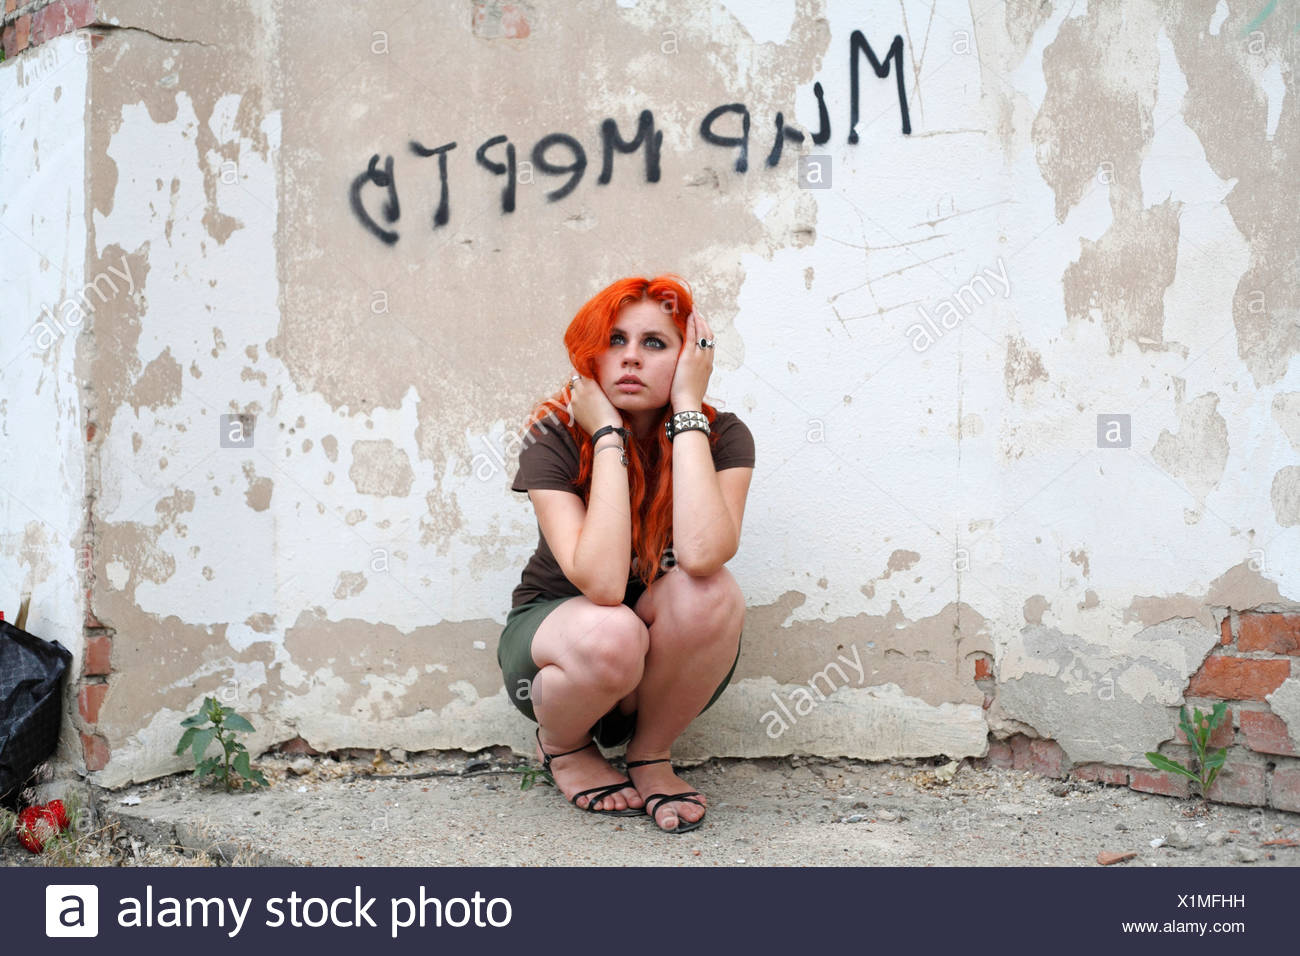 pretty redhead girl against obsolete wall - Stock Image